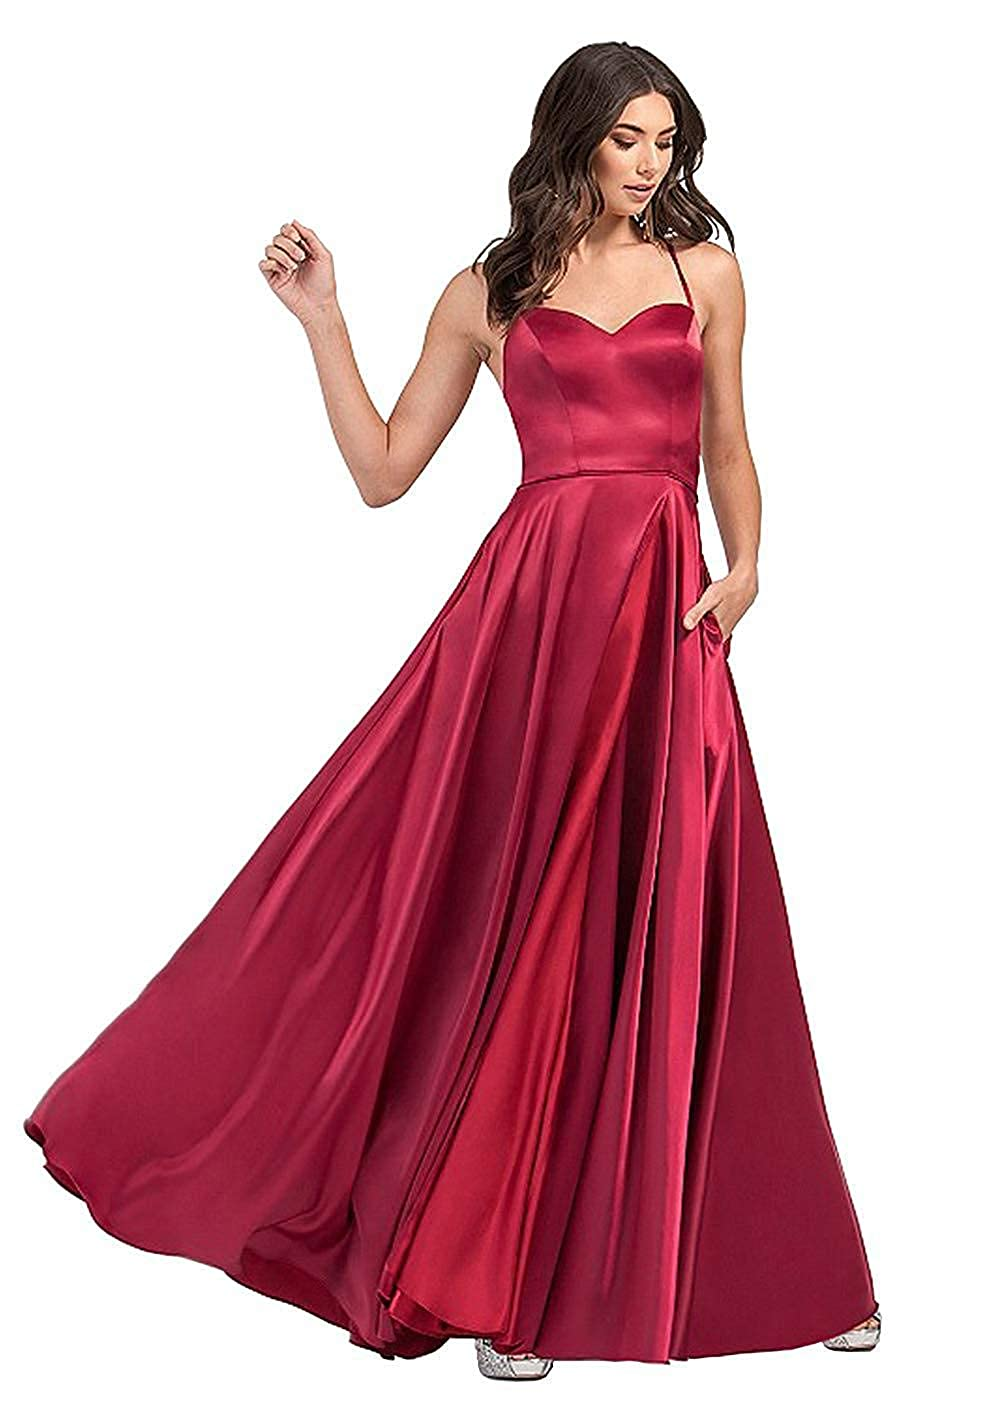 Dark Red NewFex Halter Prom Gowns with Pockets Satin Split Formal Evening Dresses for Women